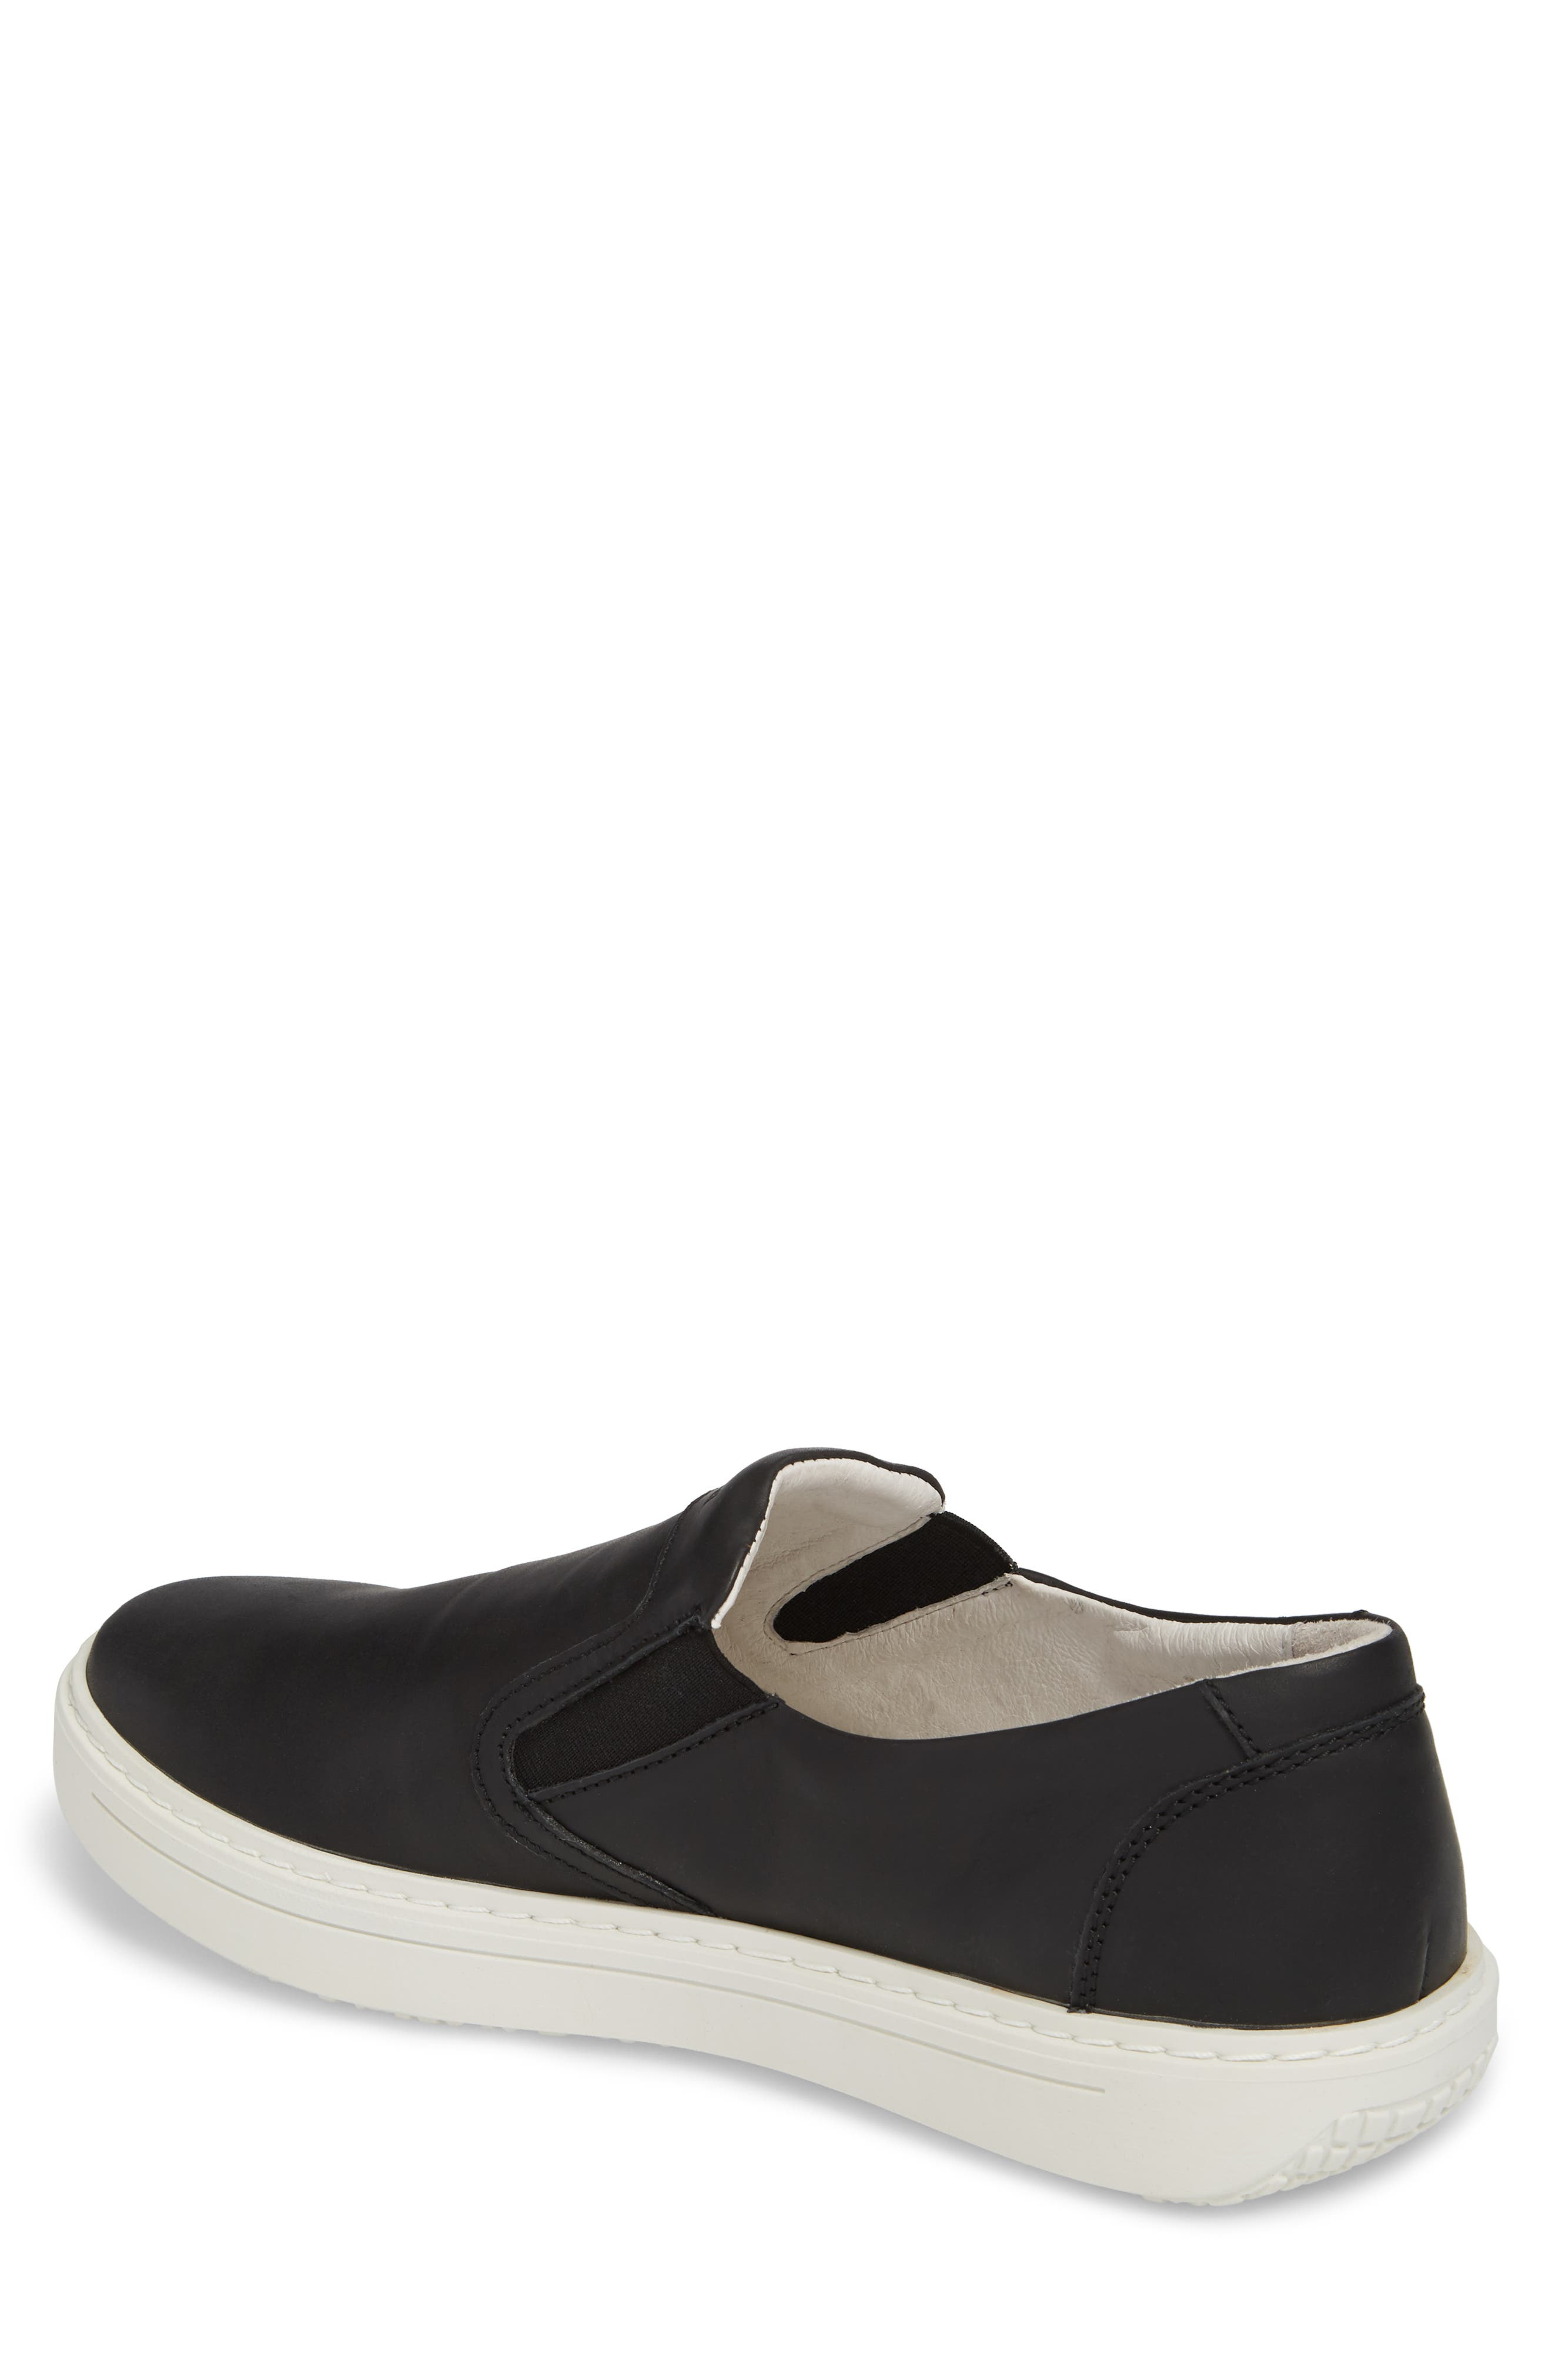 Quentin 15 Slip-On Sneaker,                             Alternate thumbnail 2, color,                             Black Leather